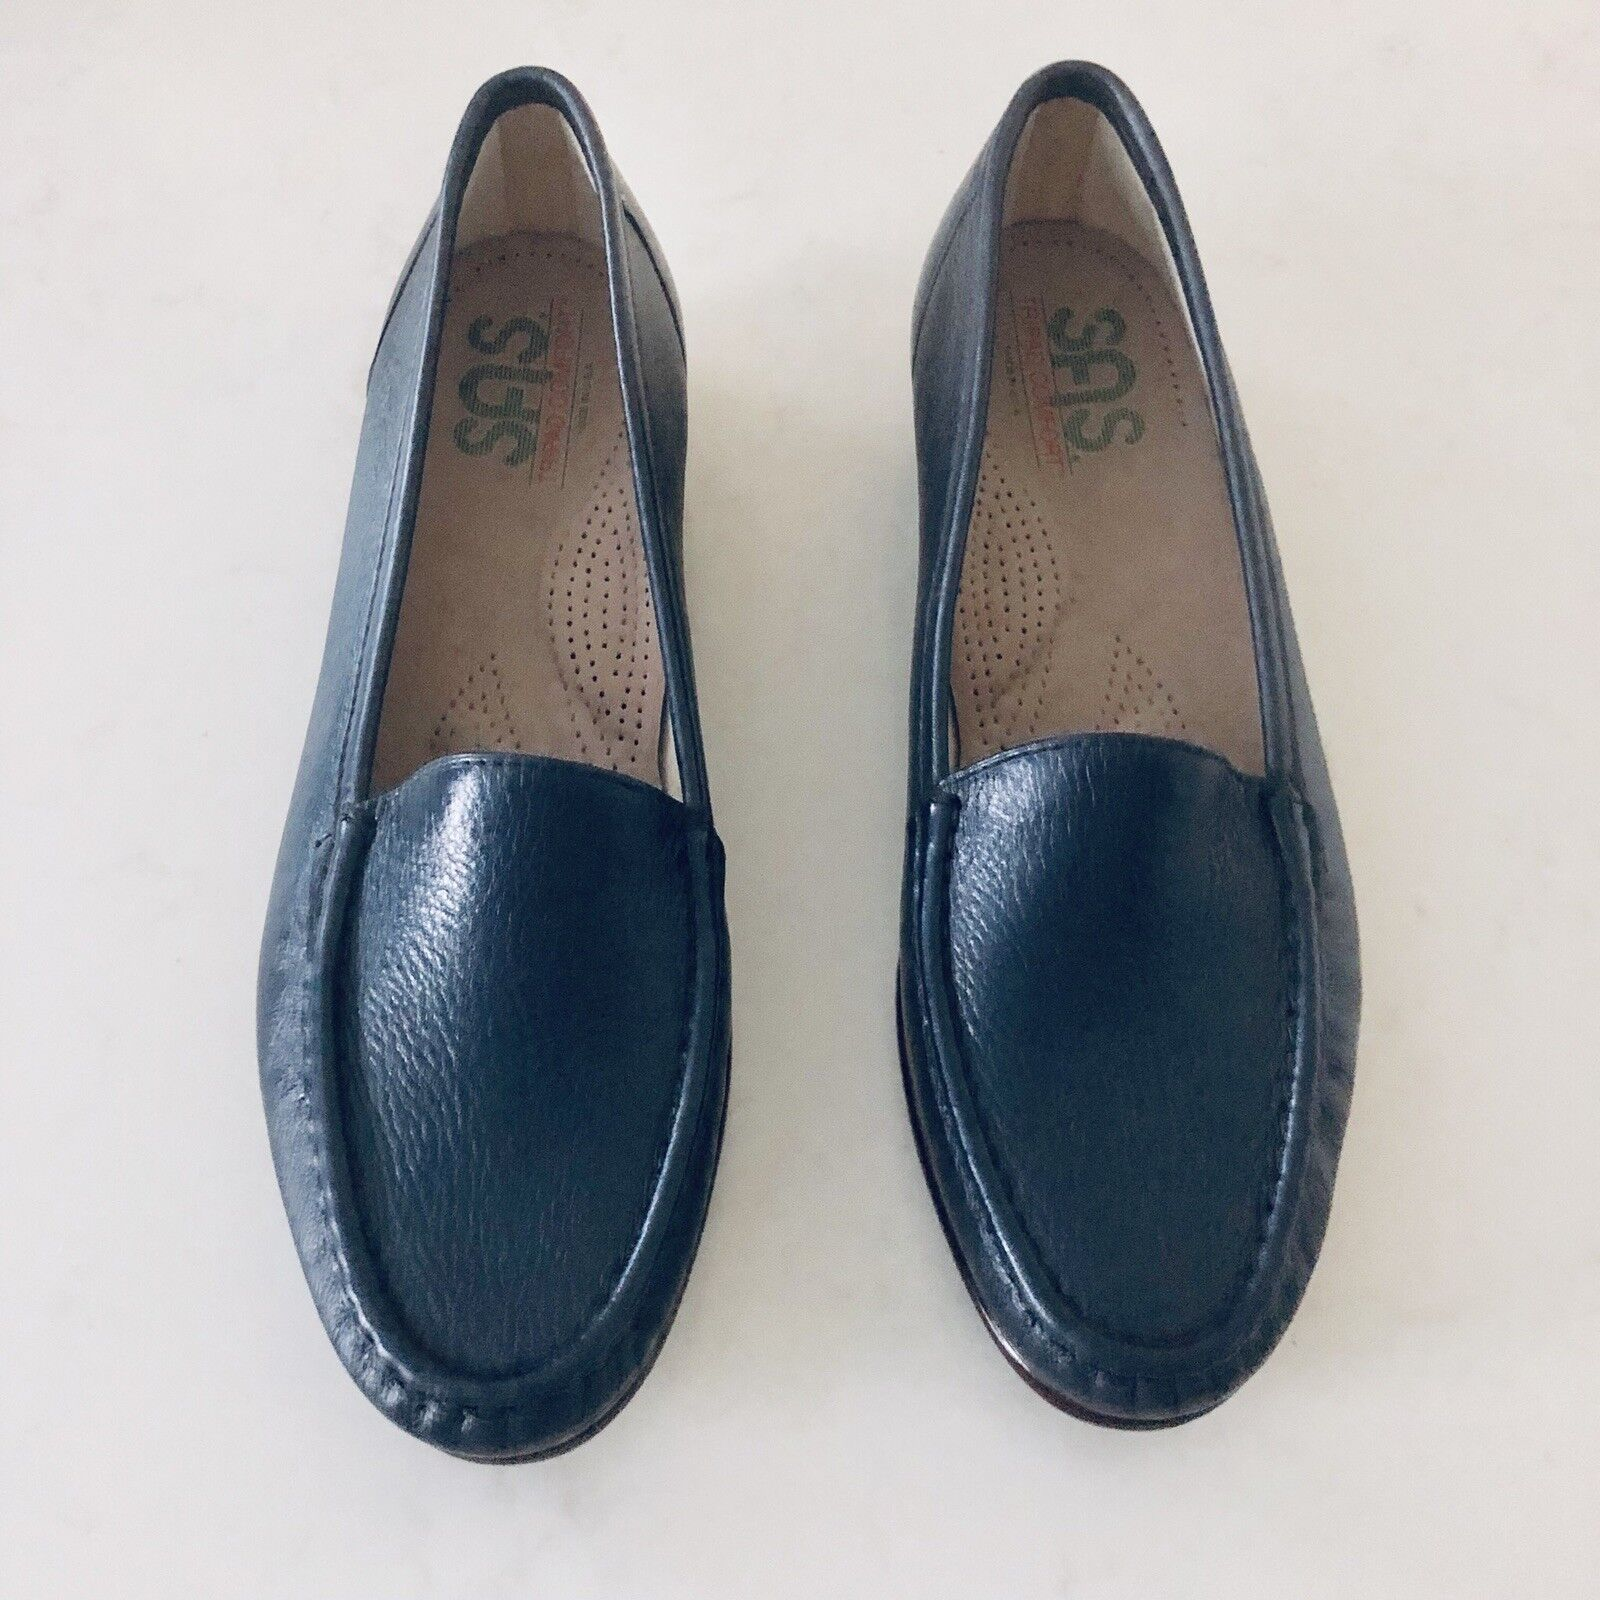 SAS leather shoes 10.5. 10.5. 10.5. Brand New Without Box d05c92